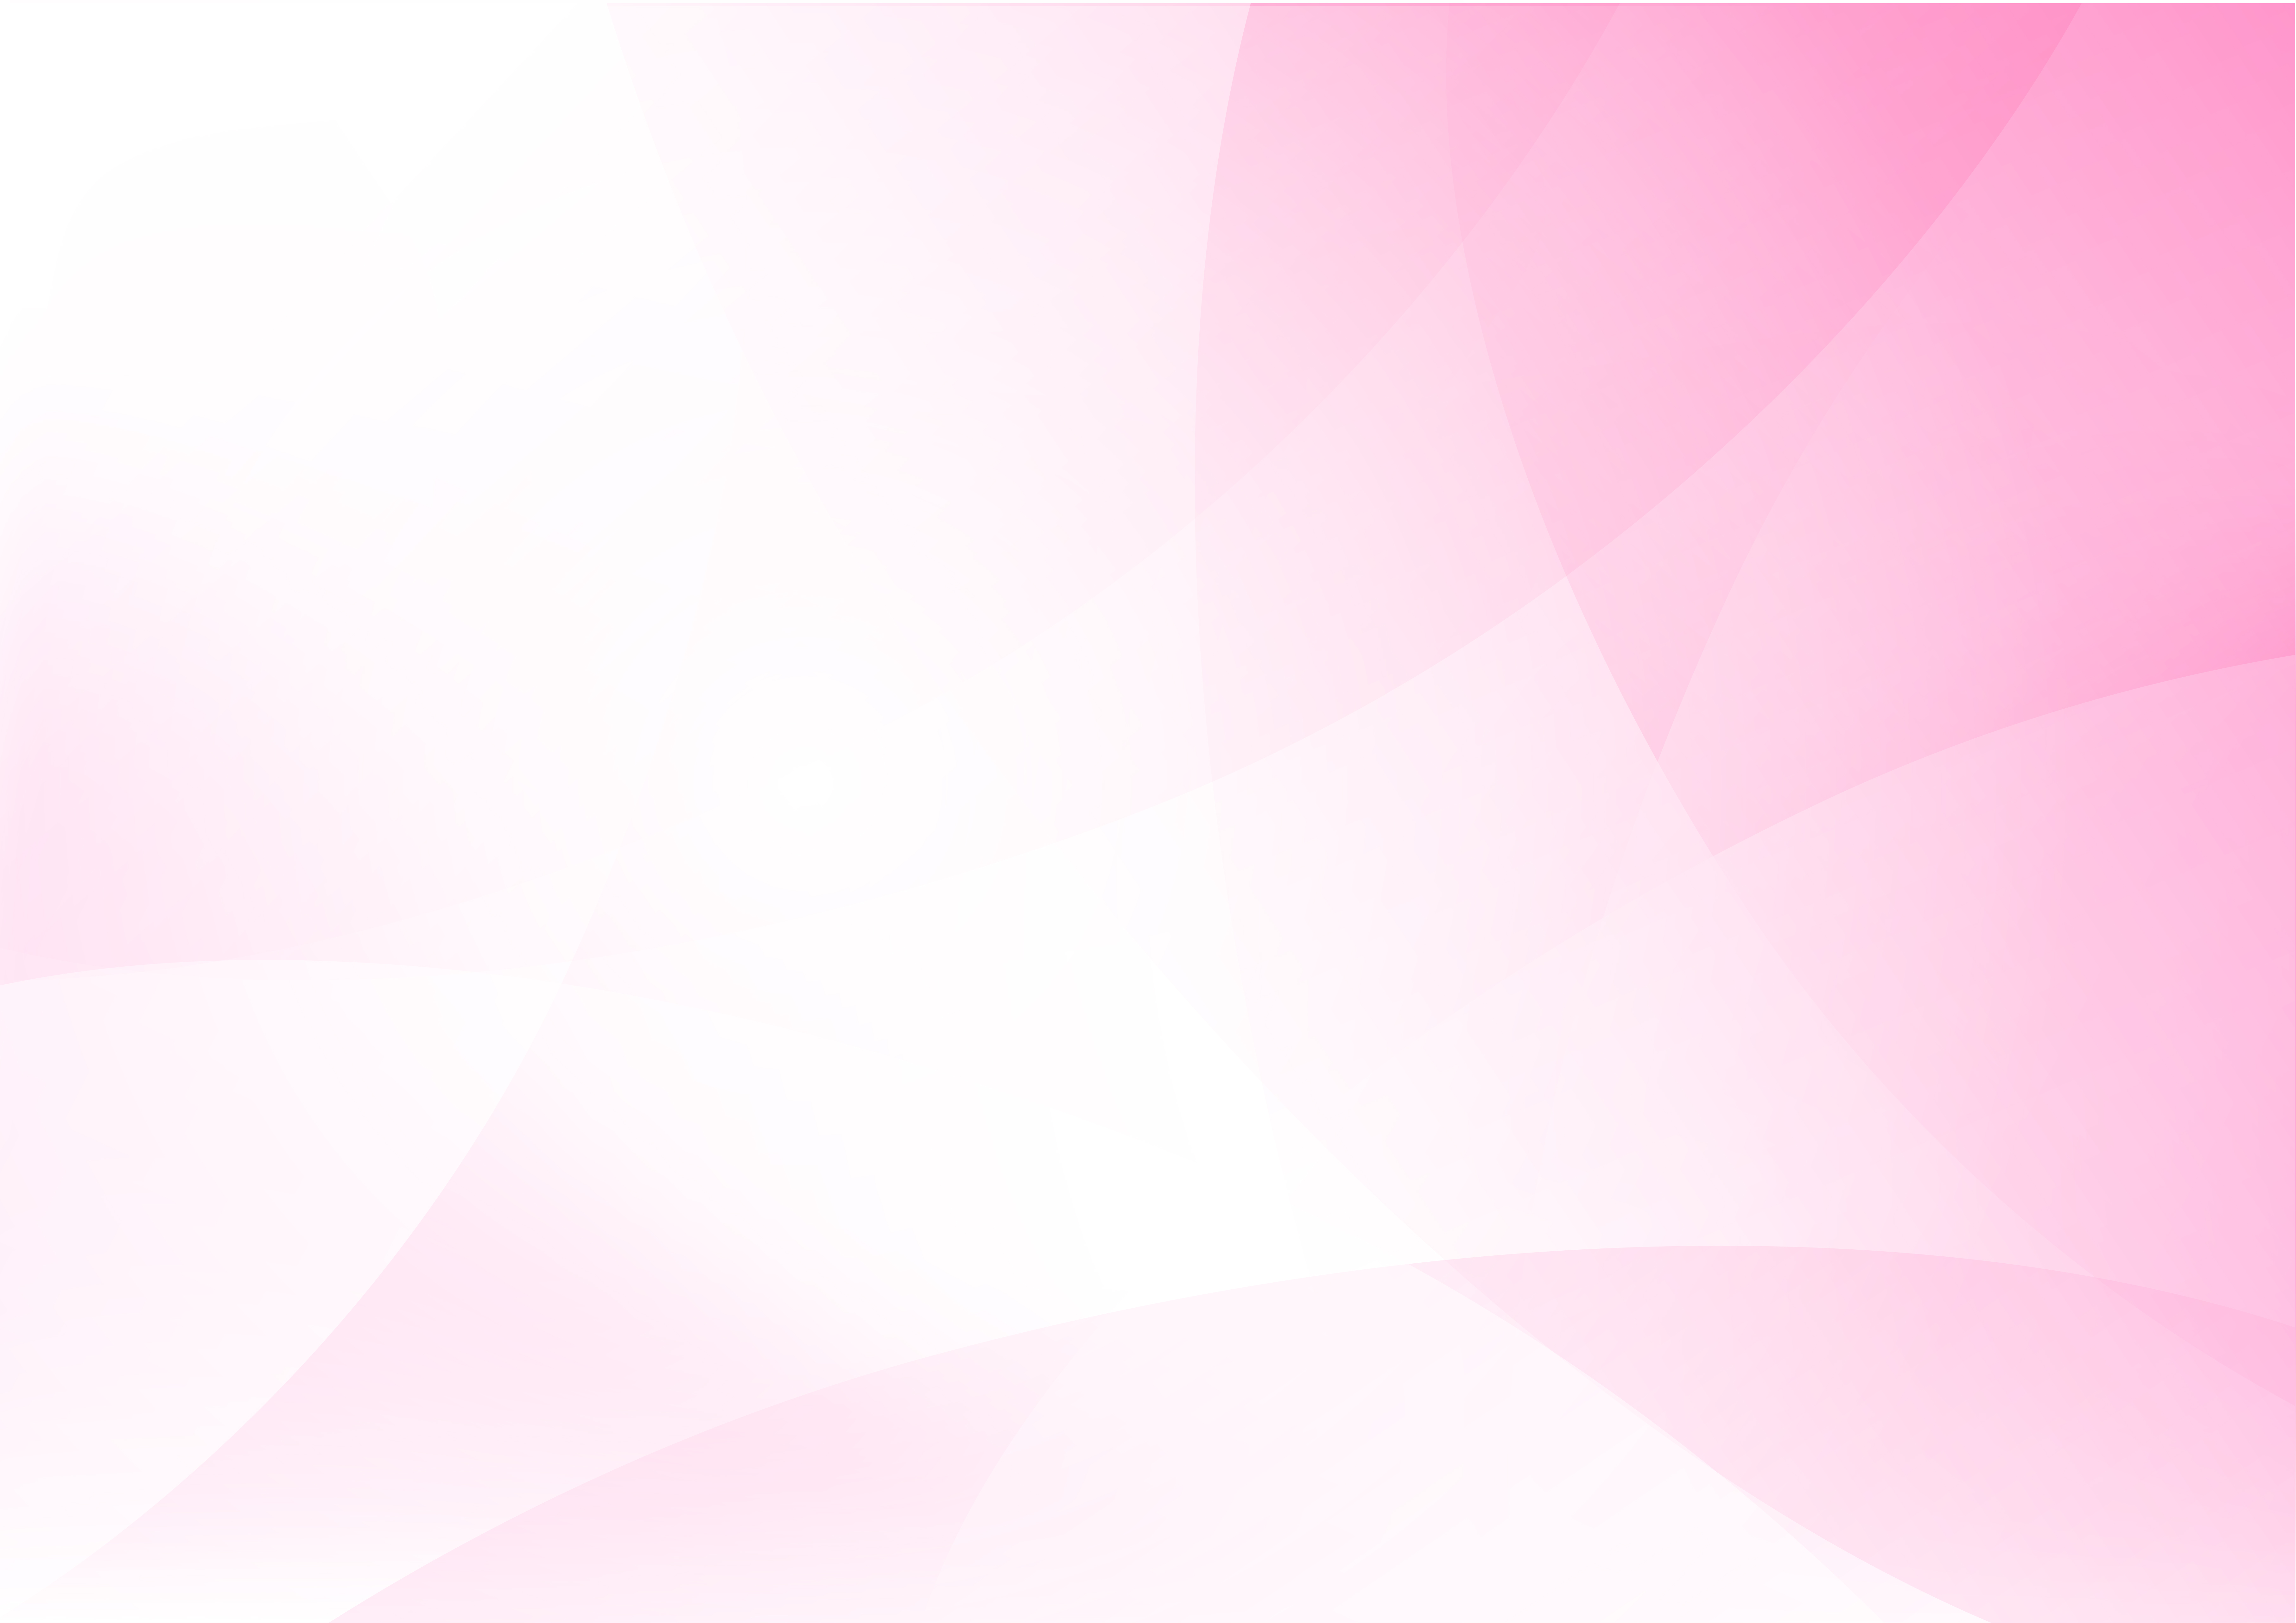 Curve and blend light pink abstract background 011 ...